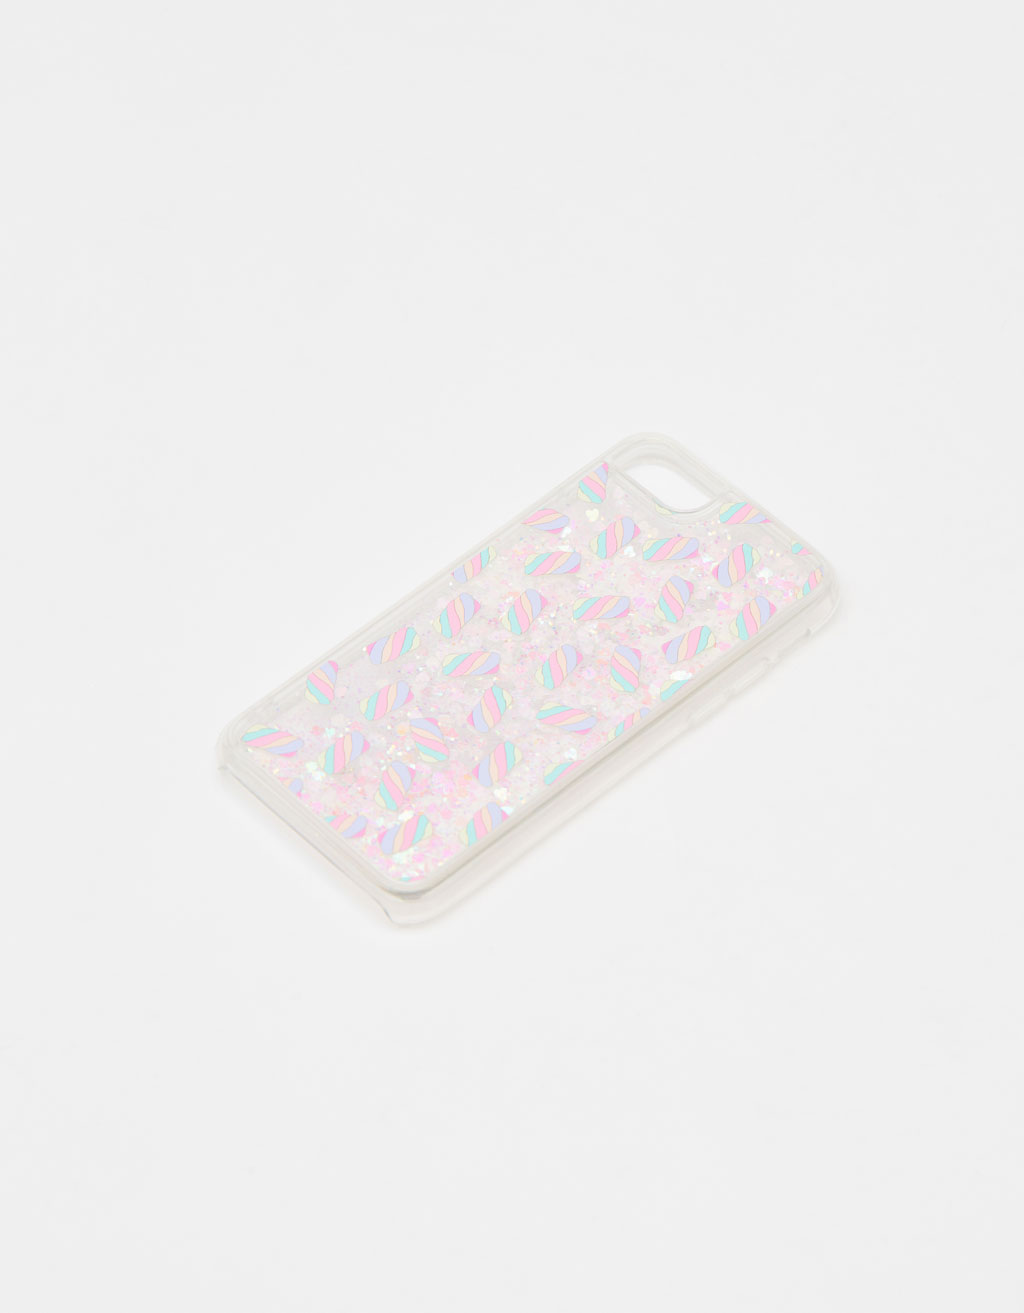 Carcassa purpurina iPhone 6/6S/7/8